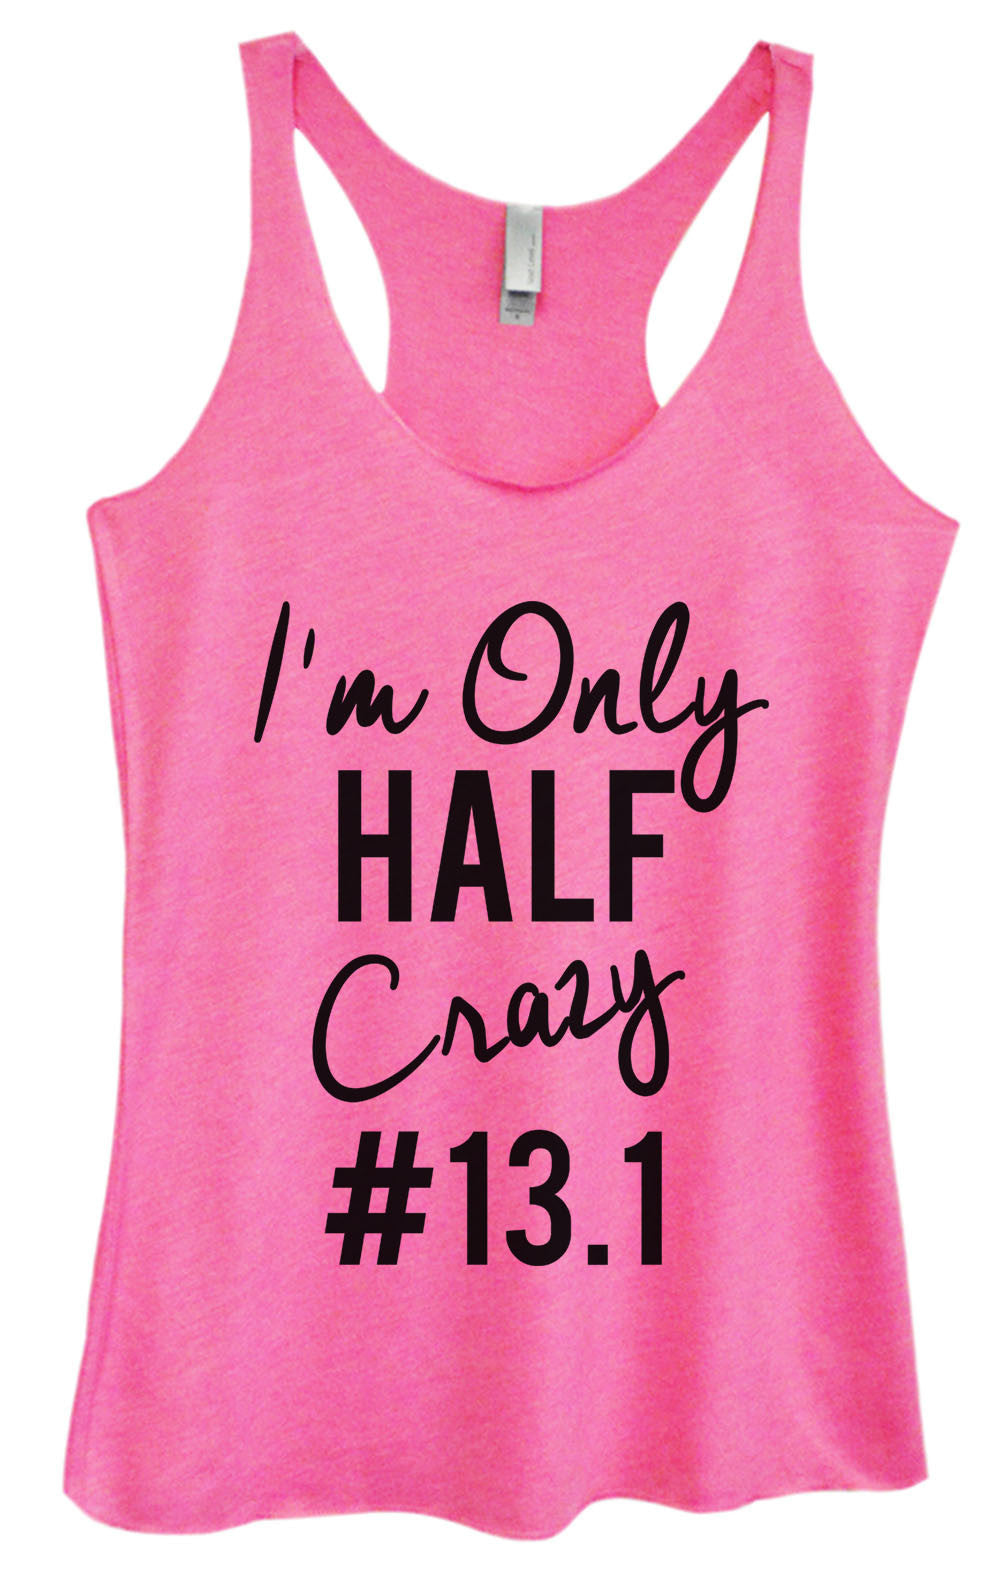 Womens Fashion Triblend Tank Top - I'm Only Half Crazy #13.1 - Tri-814 - Funny Shirts Tank Tops Burnouts and Triblends  - 1